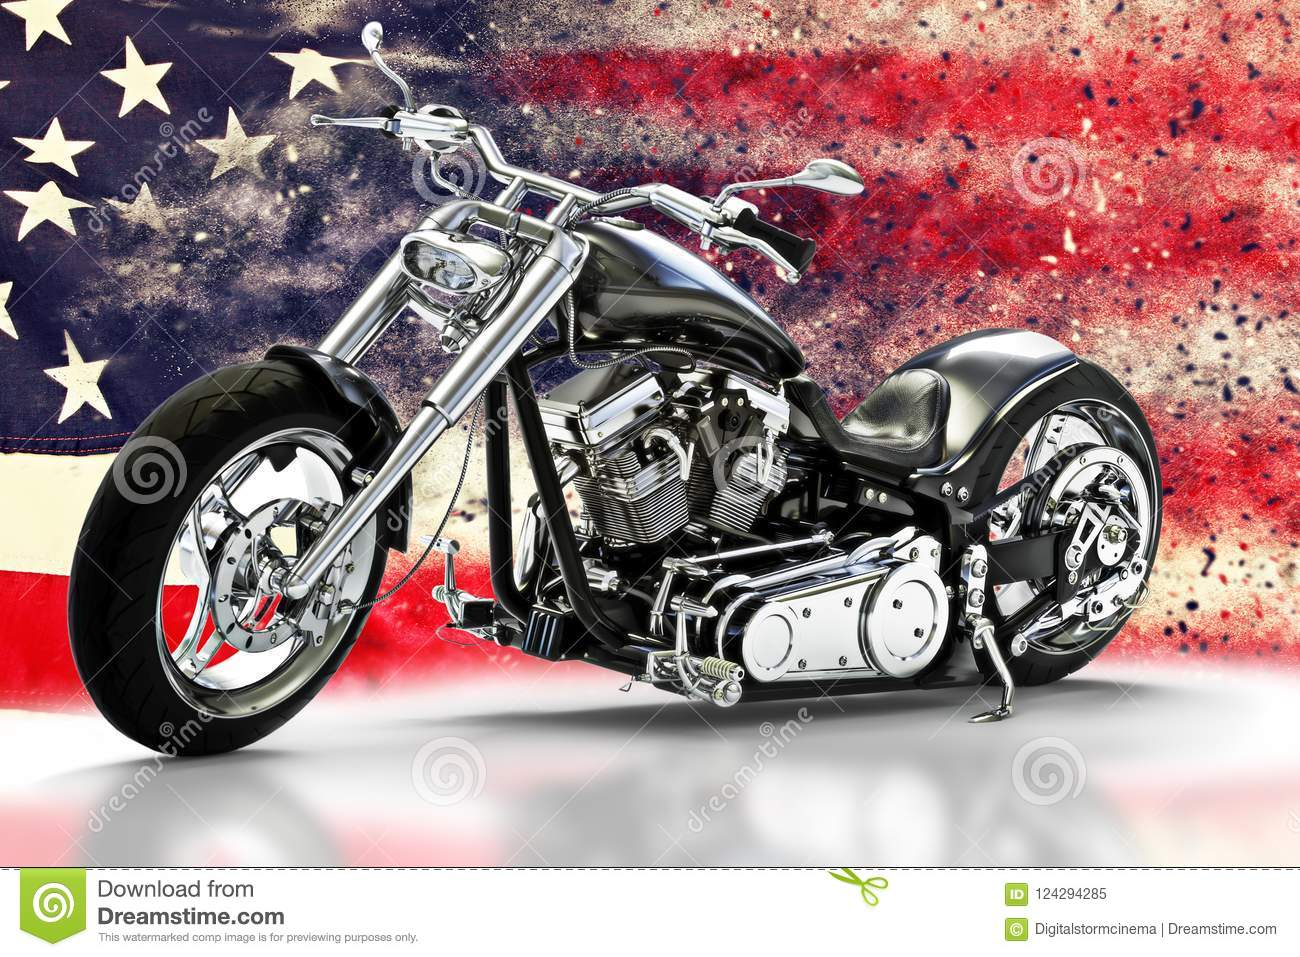 Custom black motorcycle with American flag background with dispersion effects. Made in America concept.